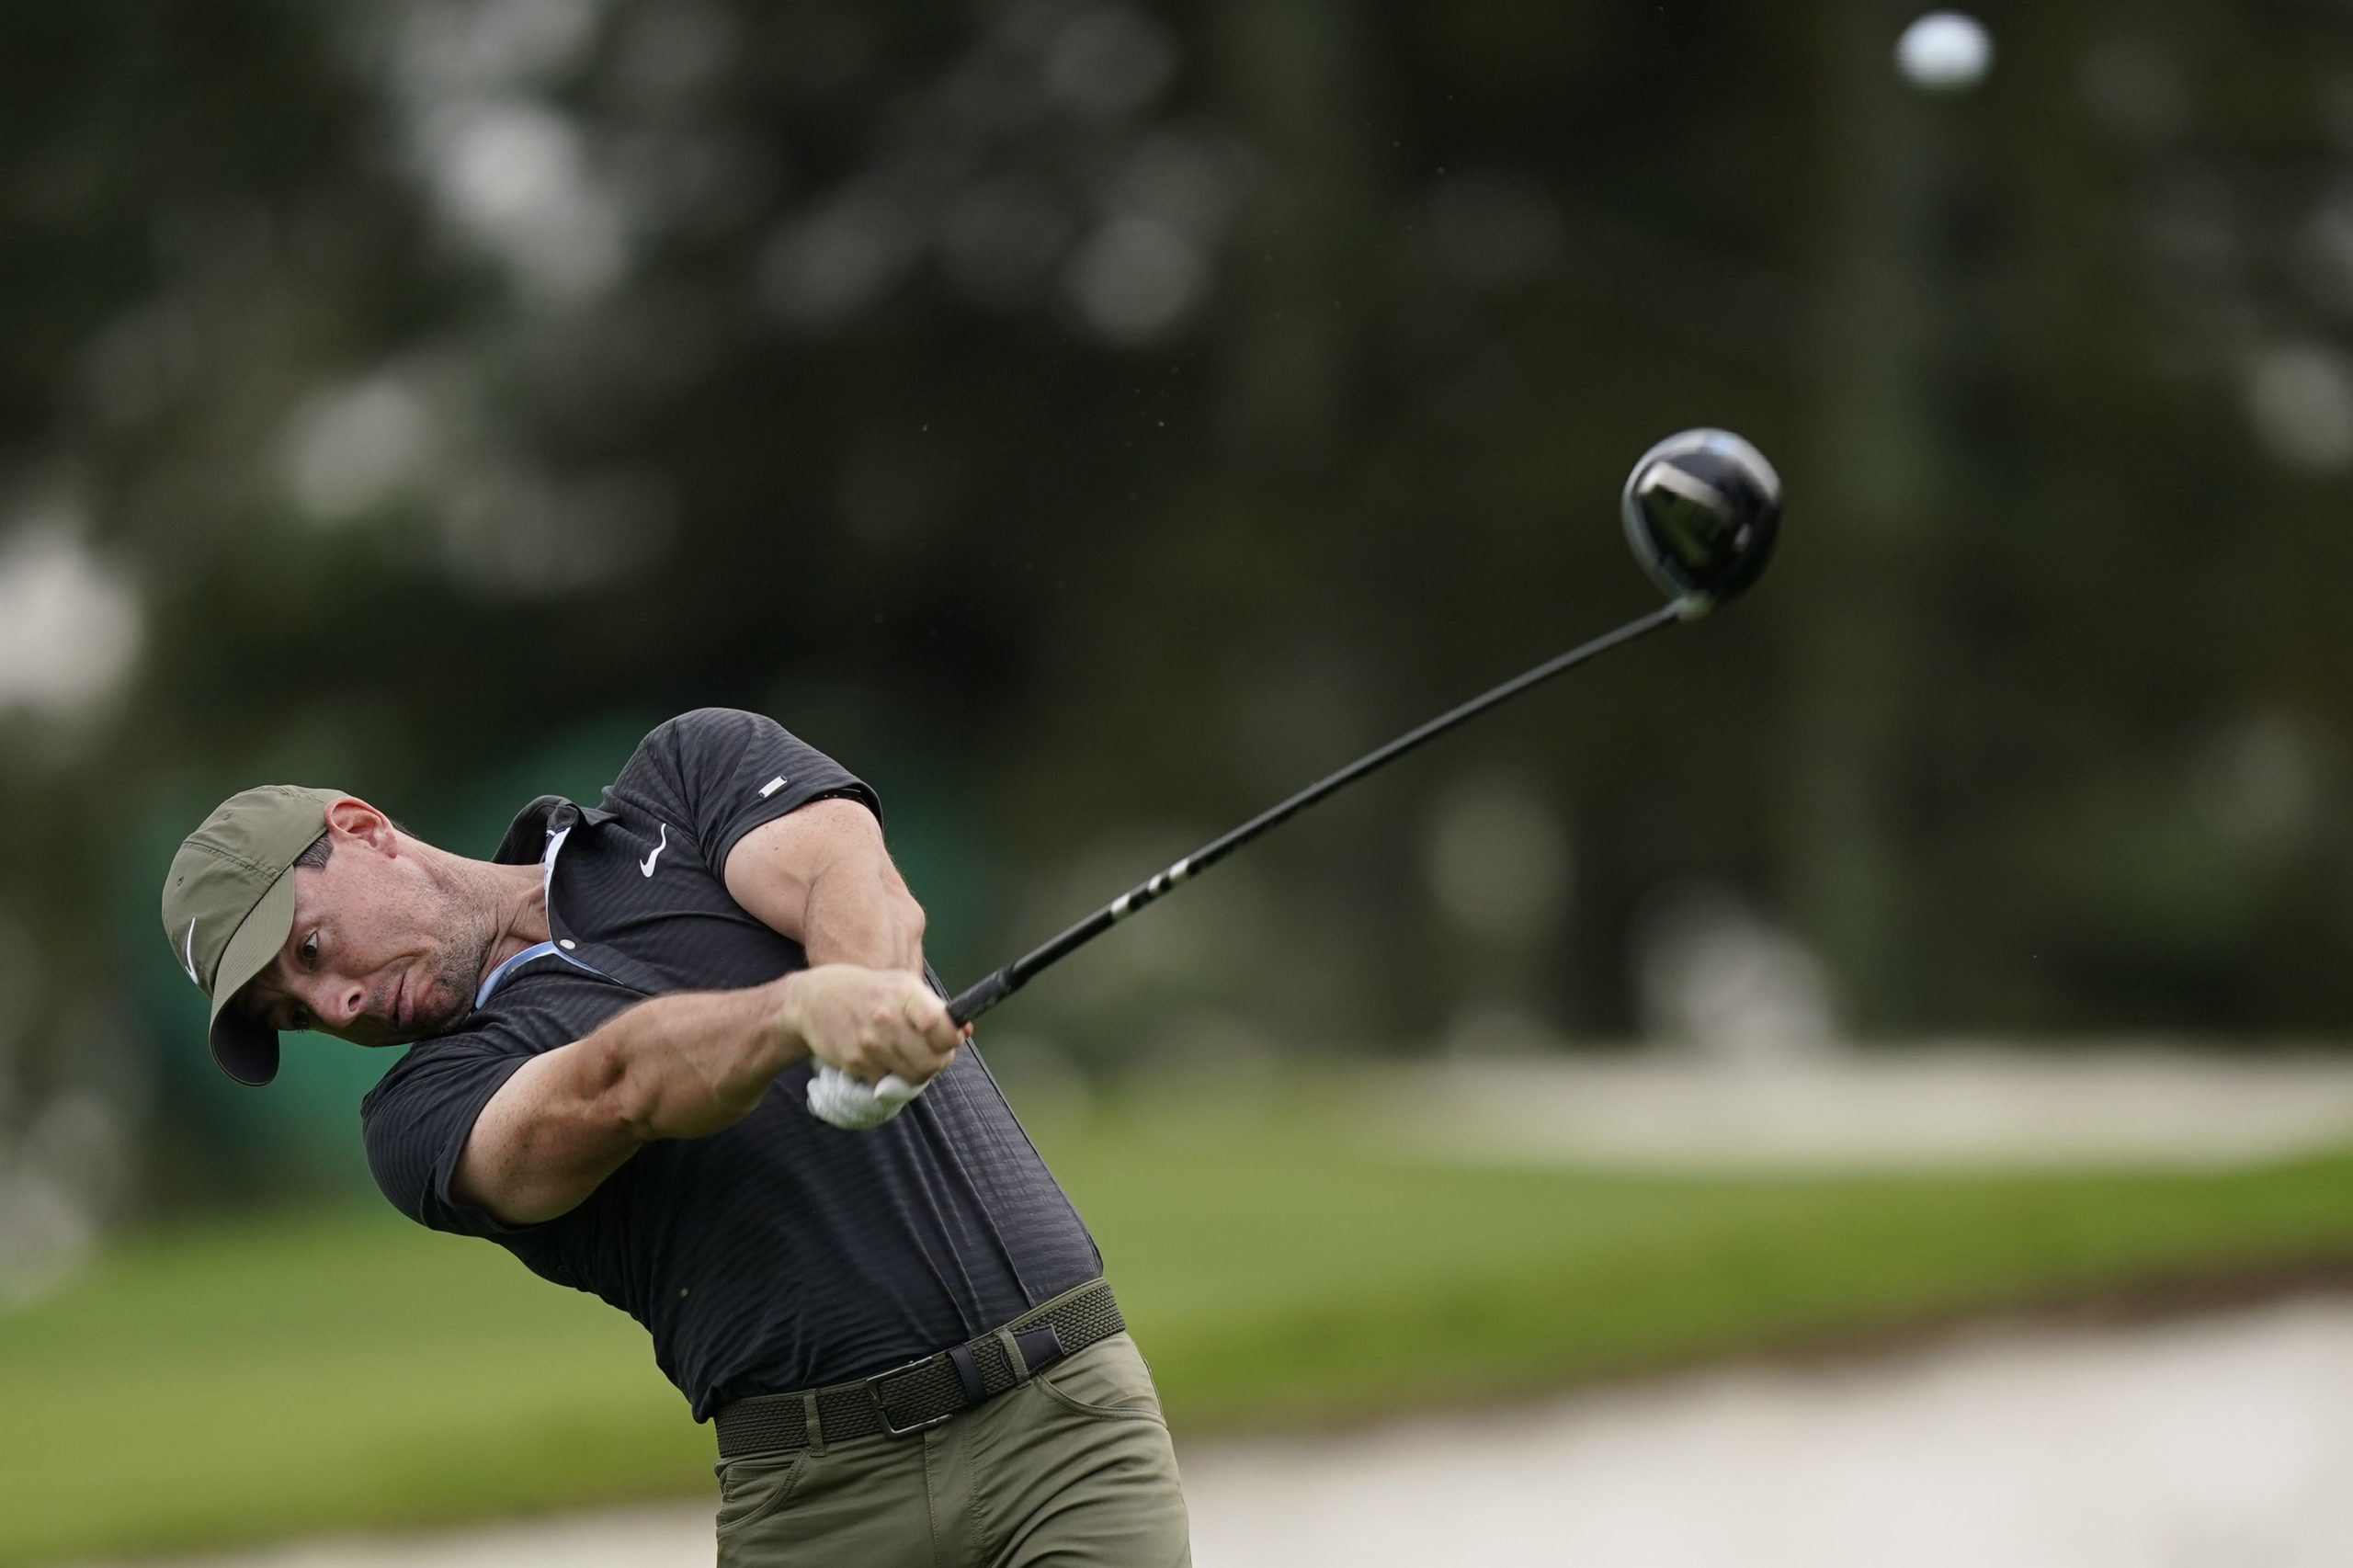 Rory McIlroy, of Northern Ireland, tees off on the third hole during a practice round for the Masters golf tournament Wednesday, Nov. 11, 2020, in Augusta, Ga.